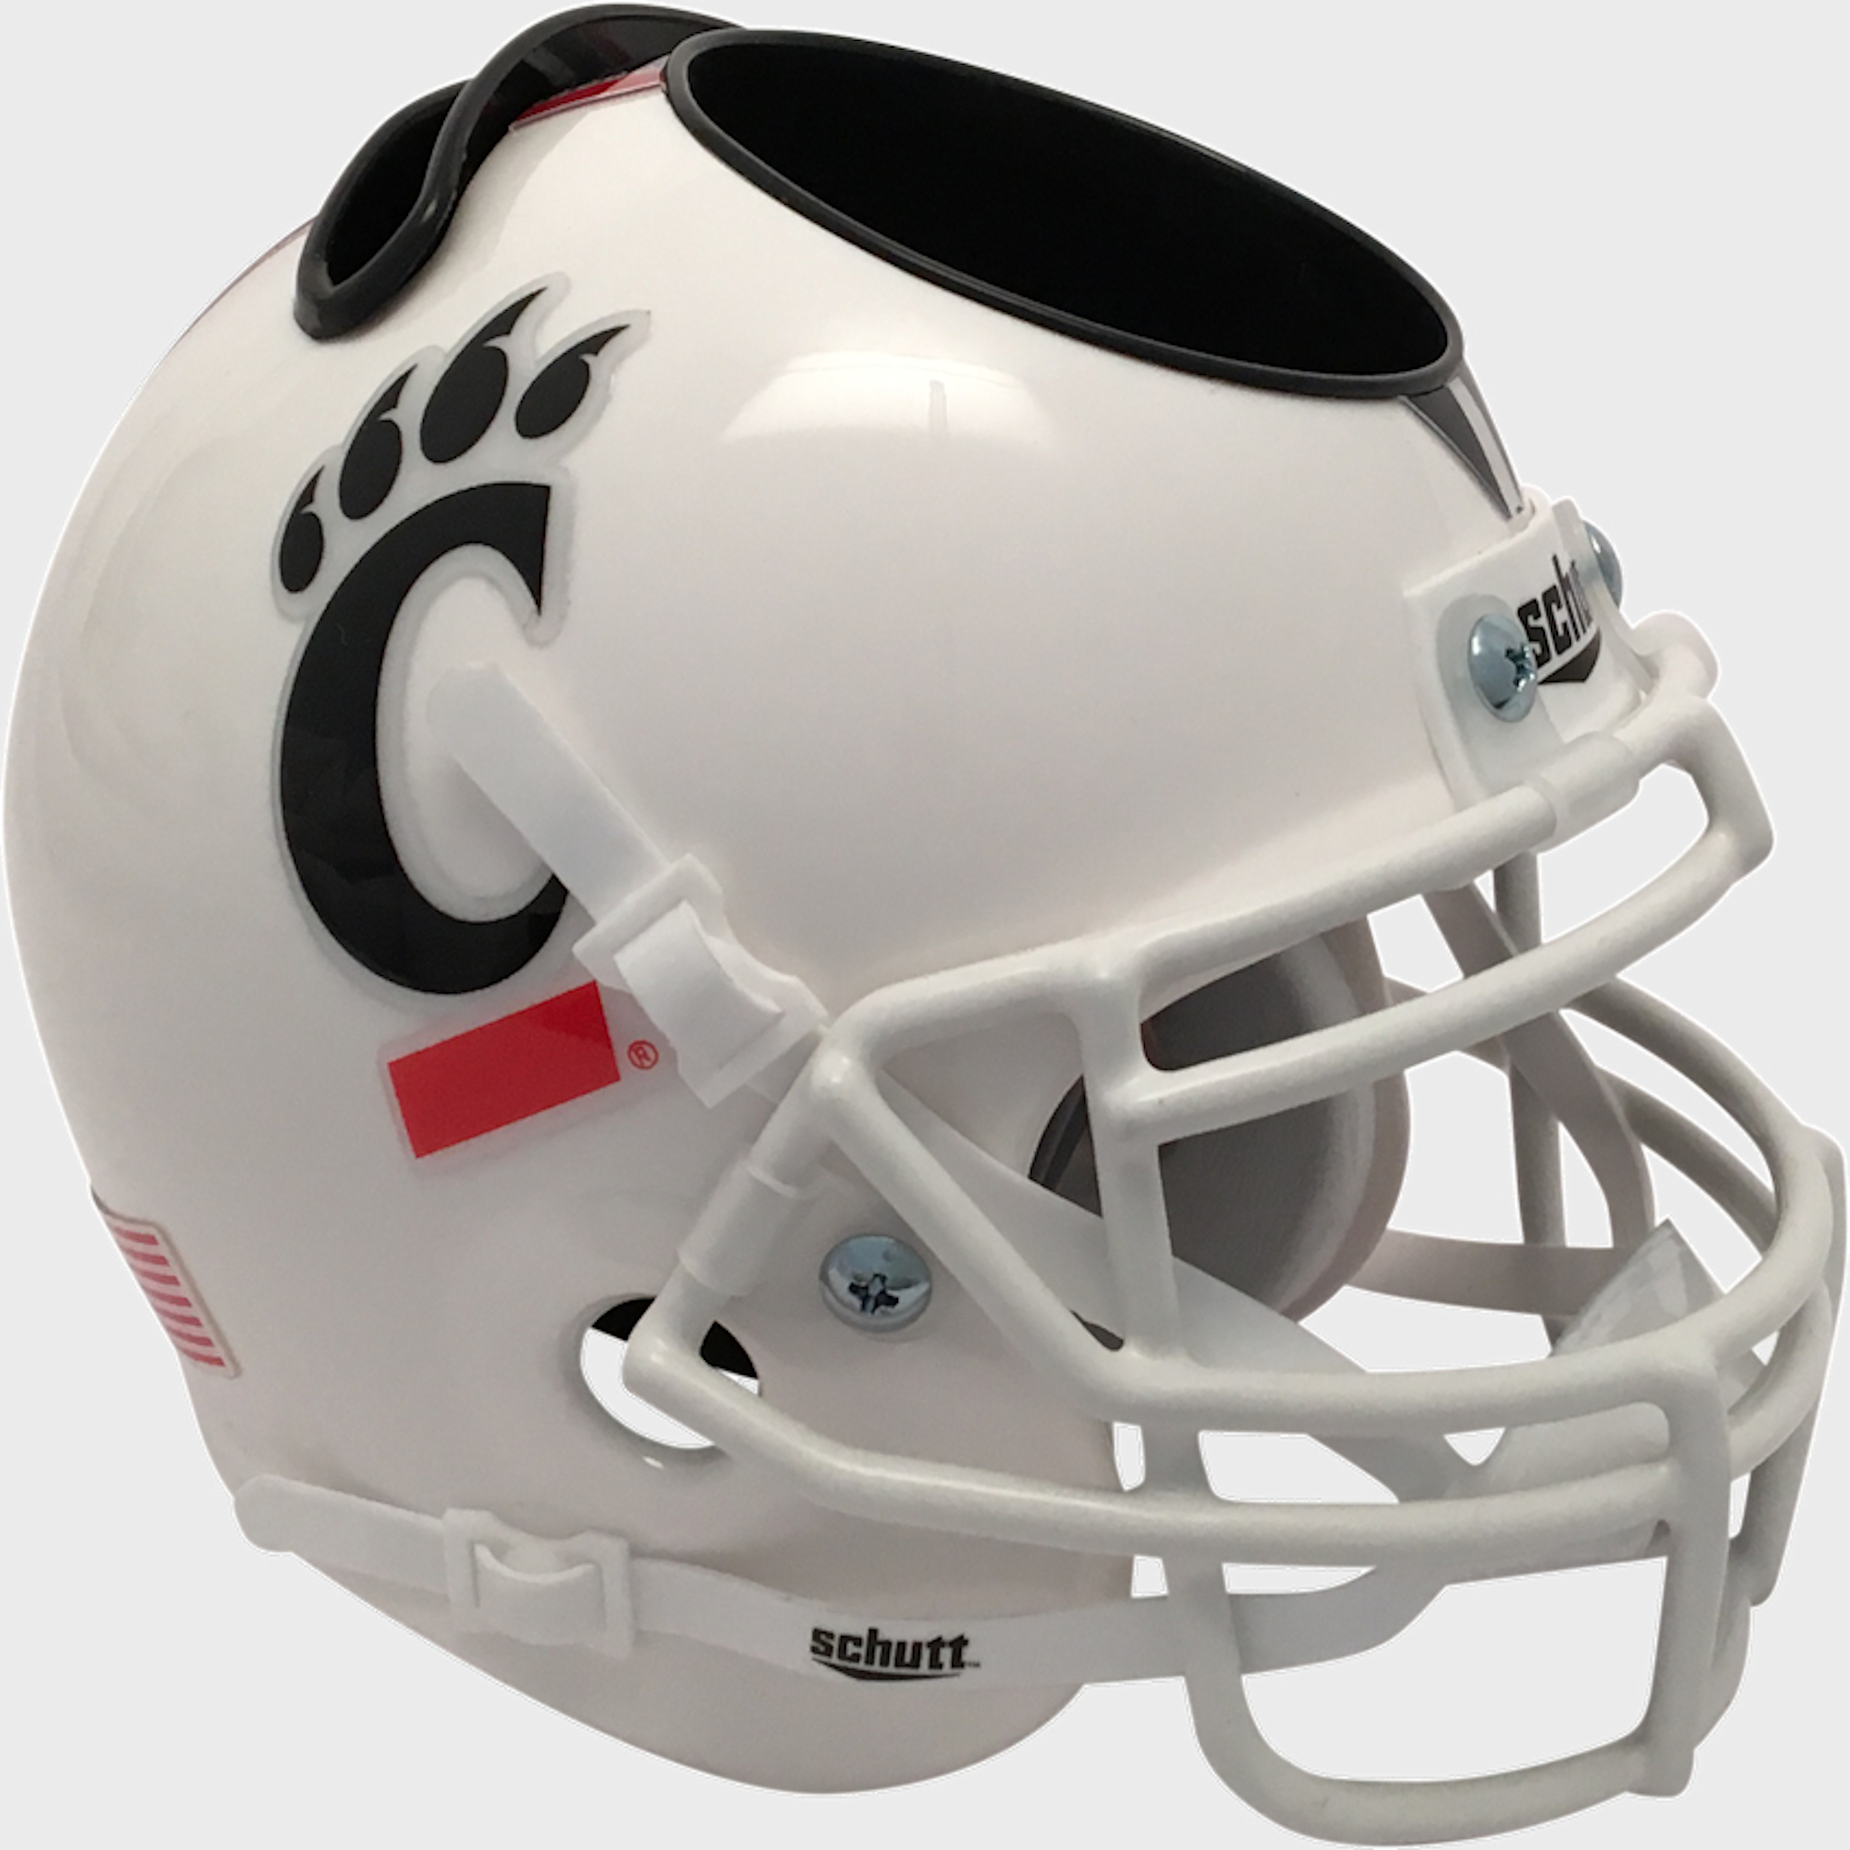 Cincinnati Bearcats Mini Football Helmet Desk Caddy <B>Tribal Stripe</B>